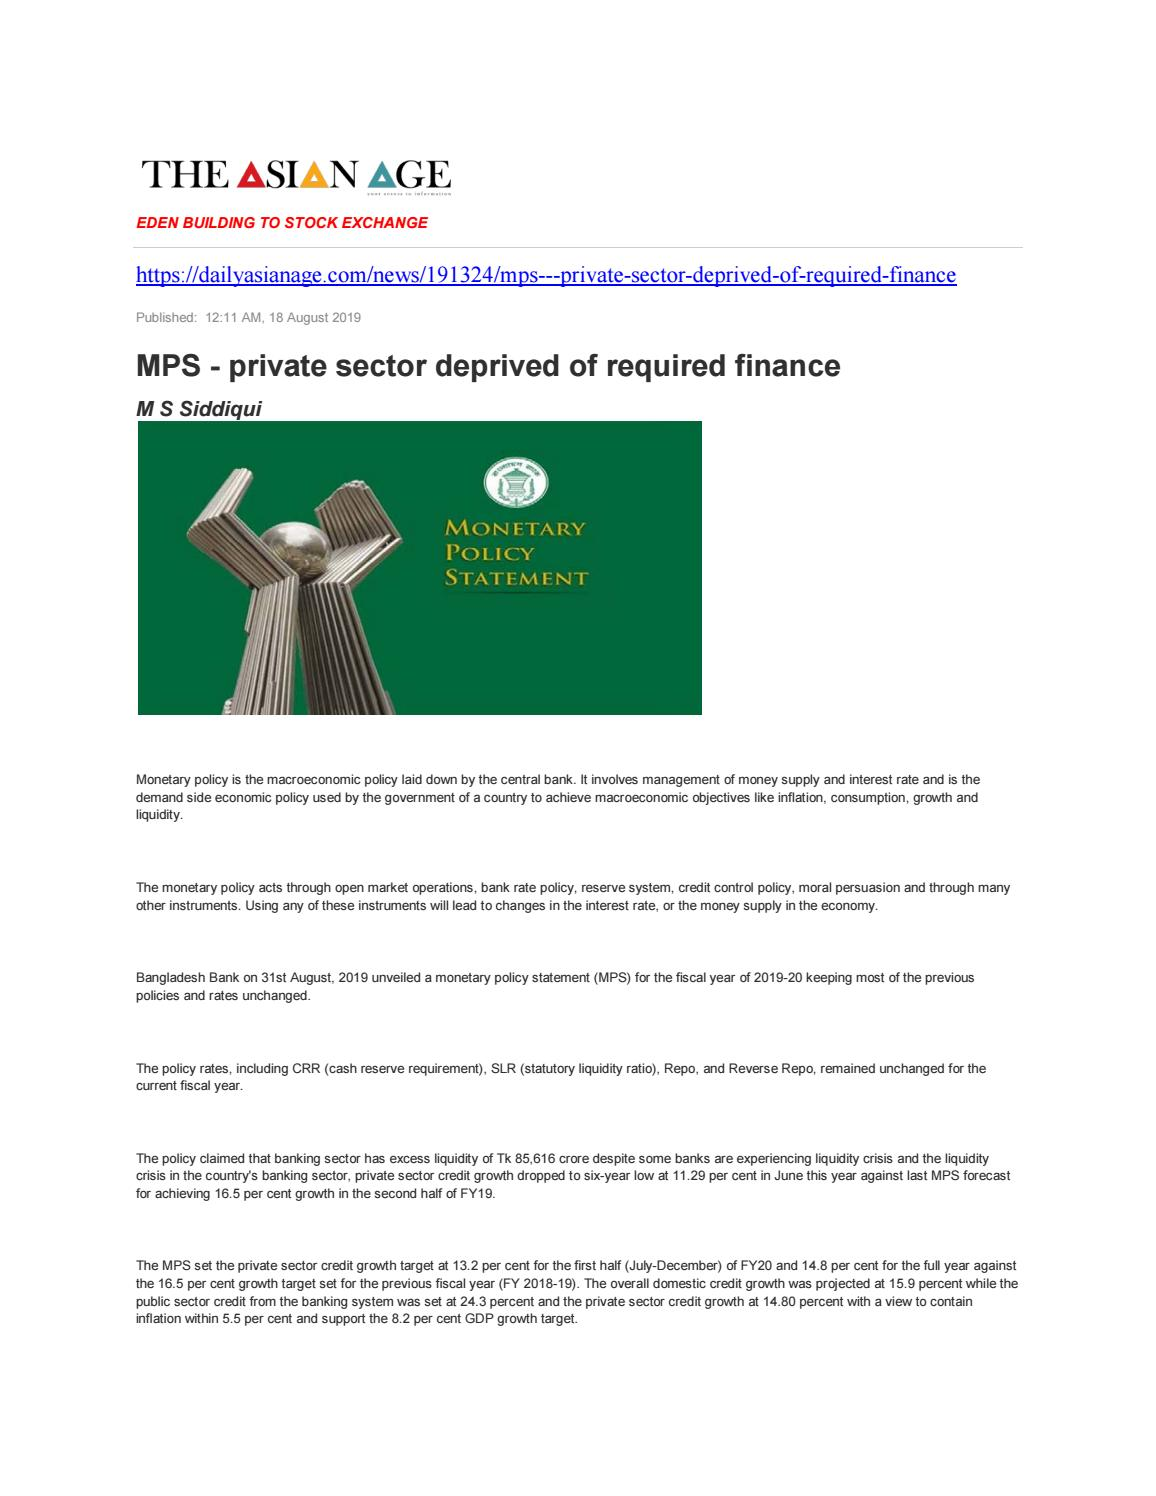 MPS - private sector deprived of required finance by M S